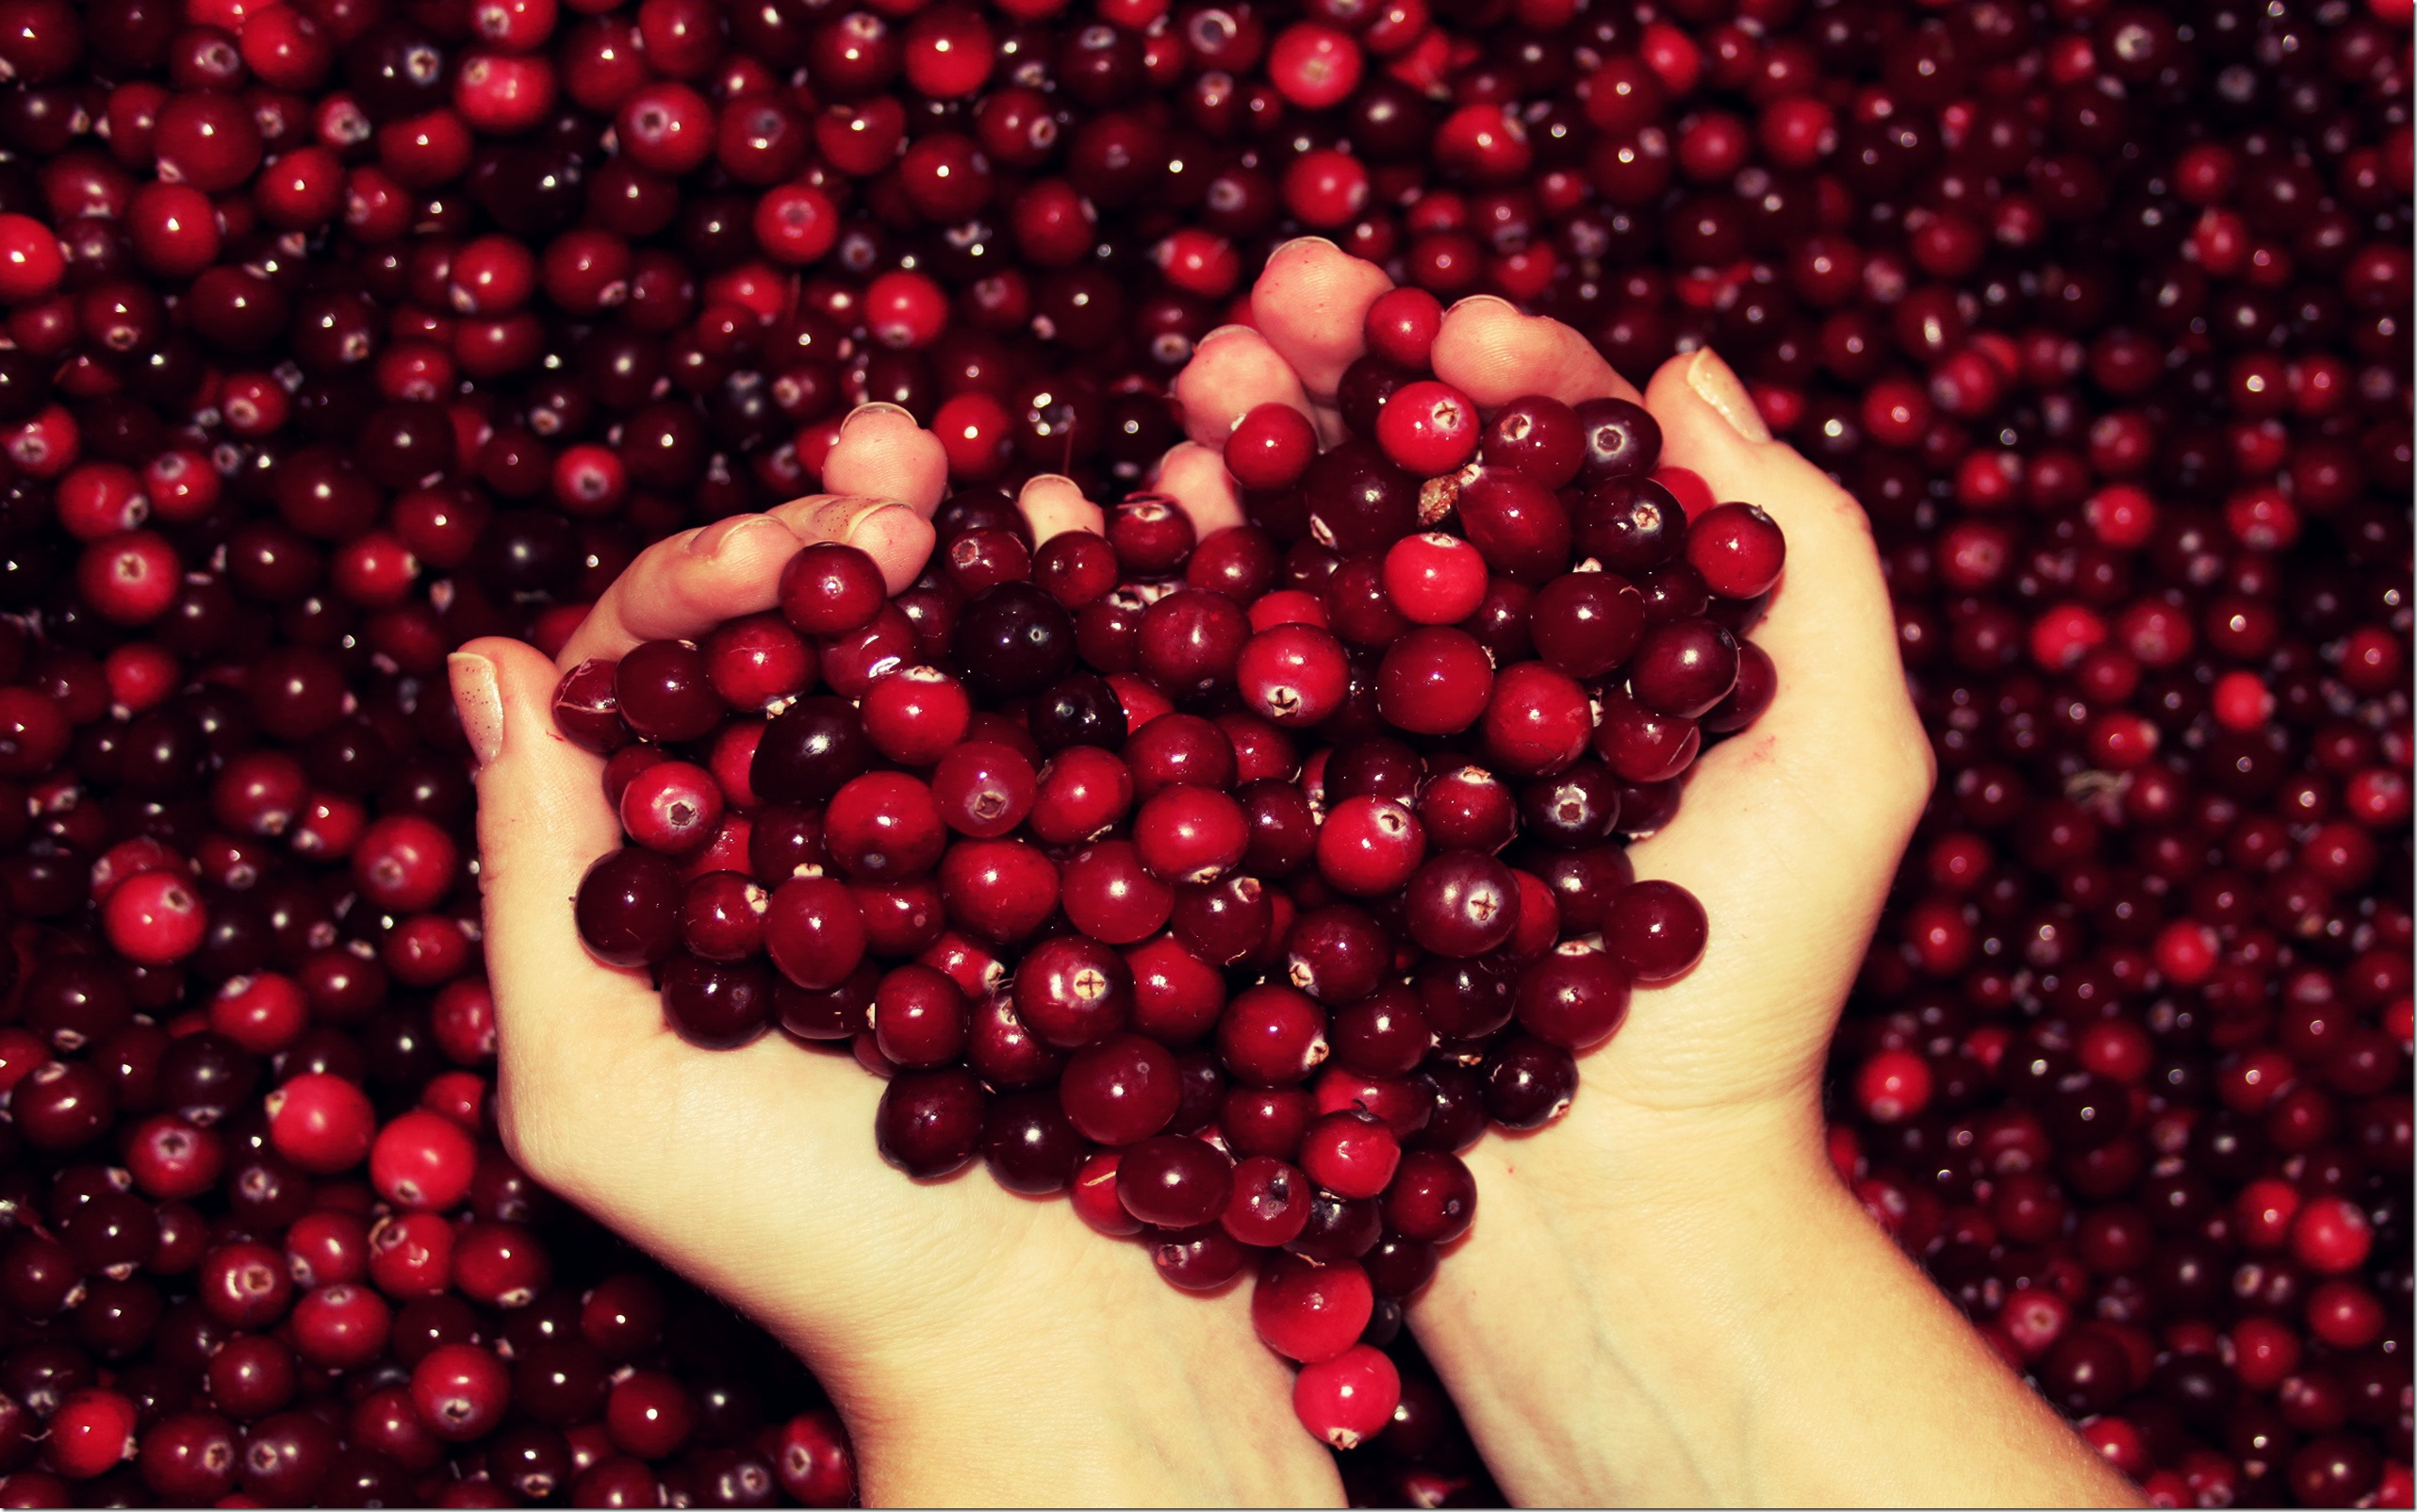 autumn-free-wallpaper-autumn-s-cranberry-heart